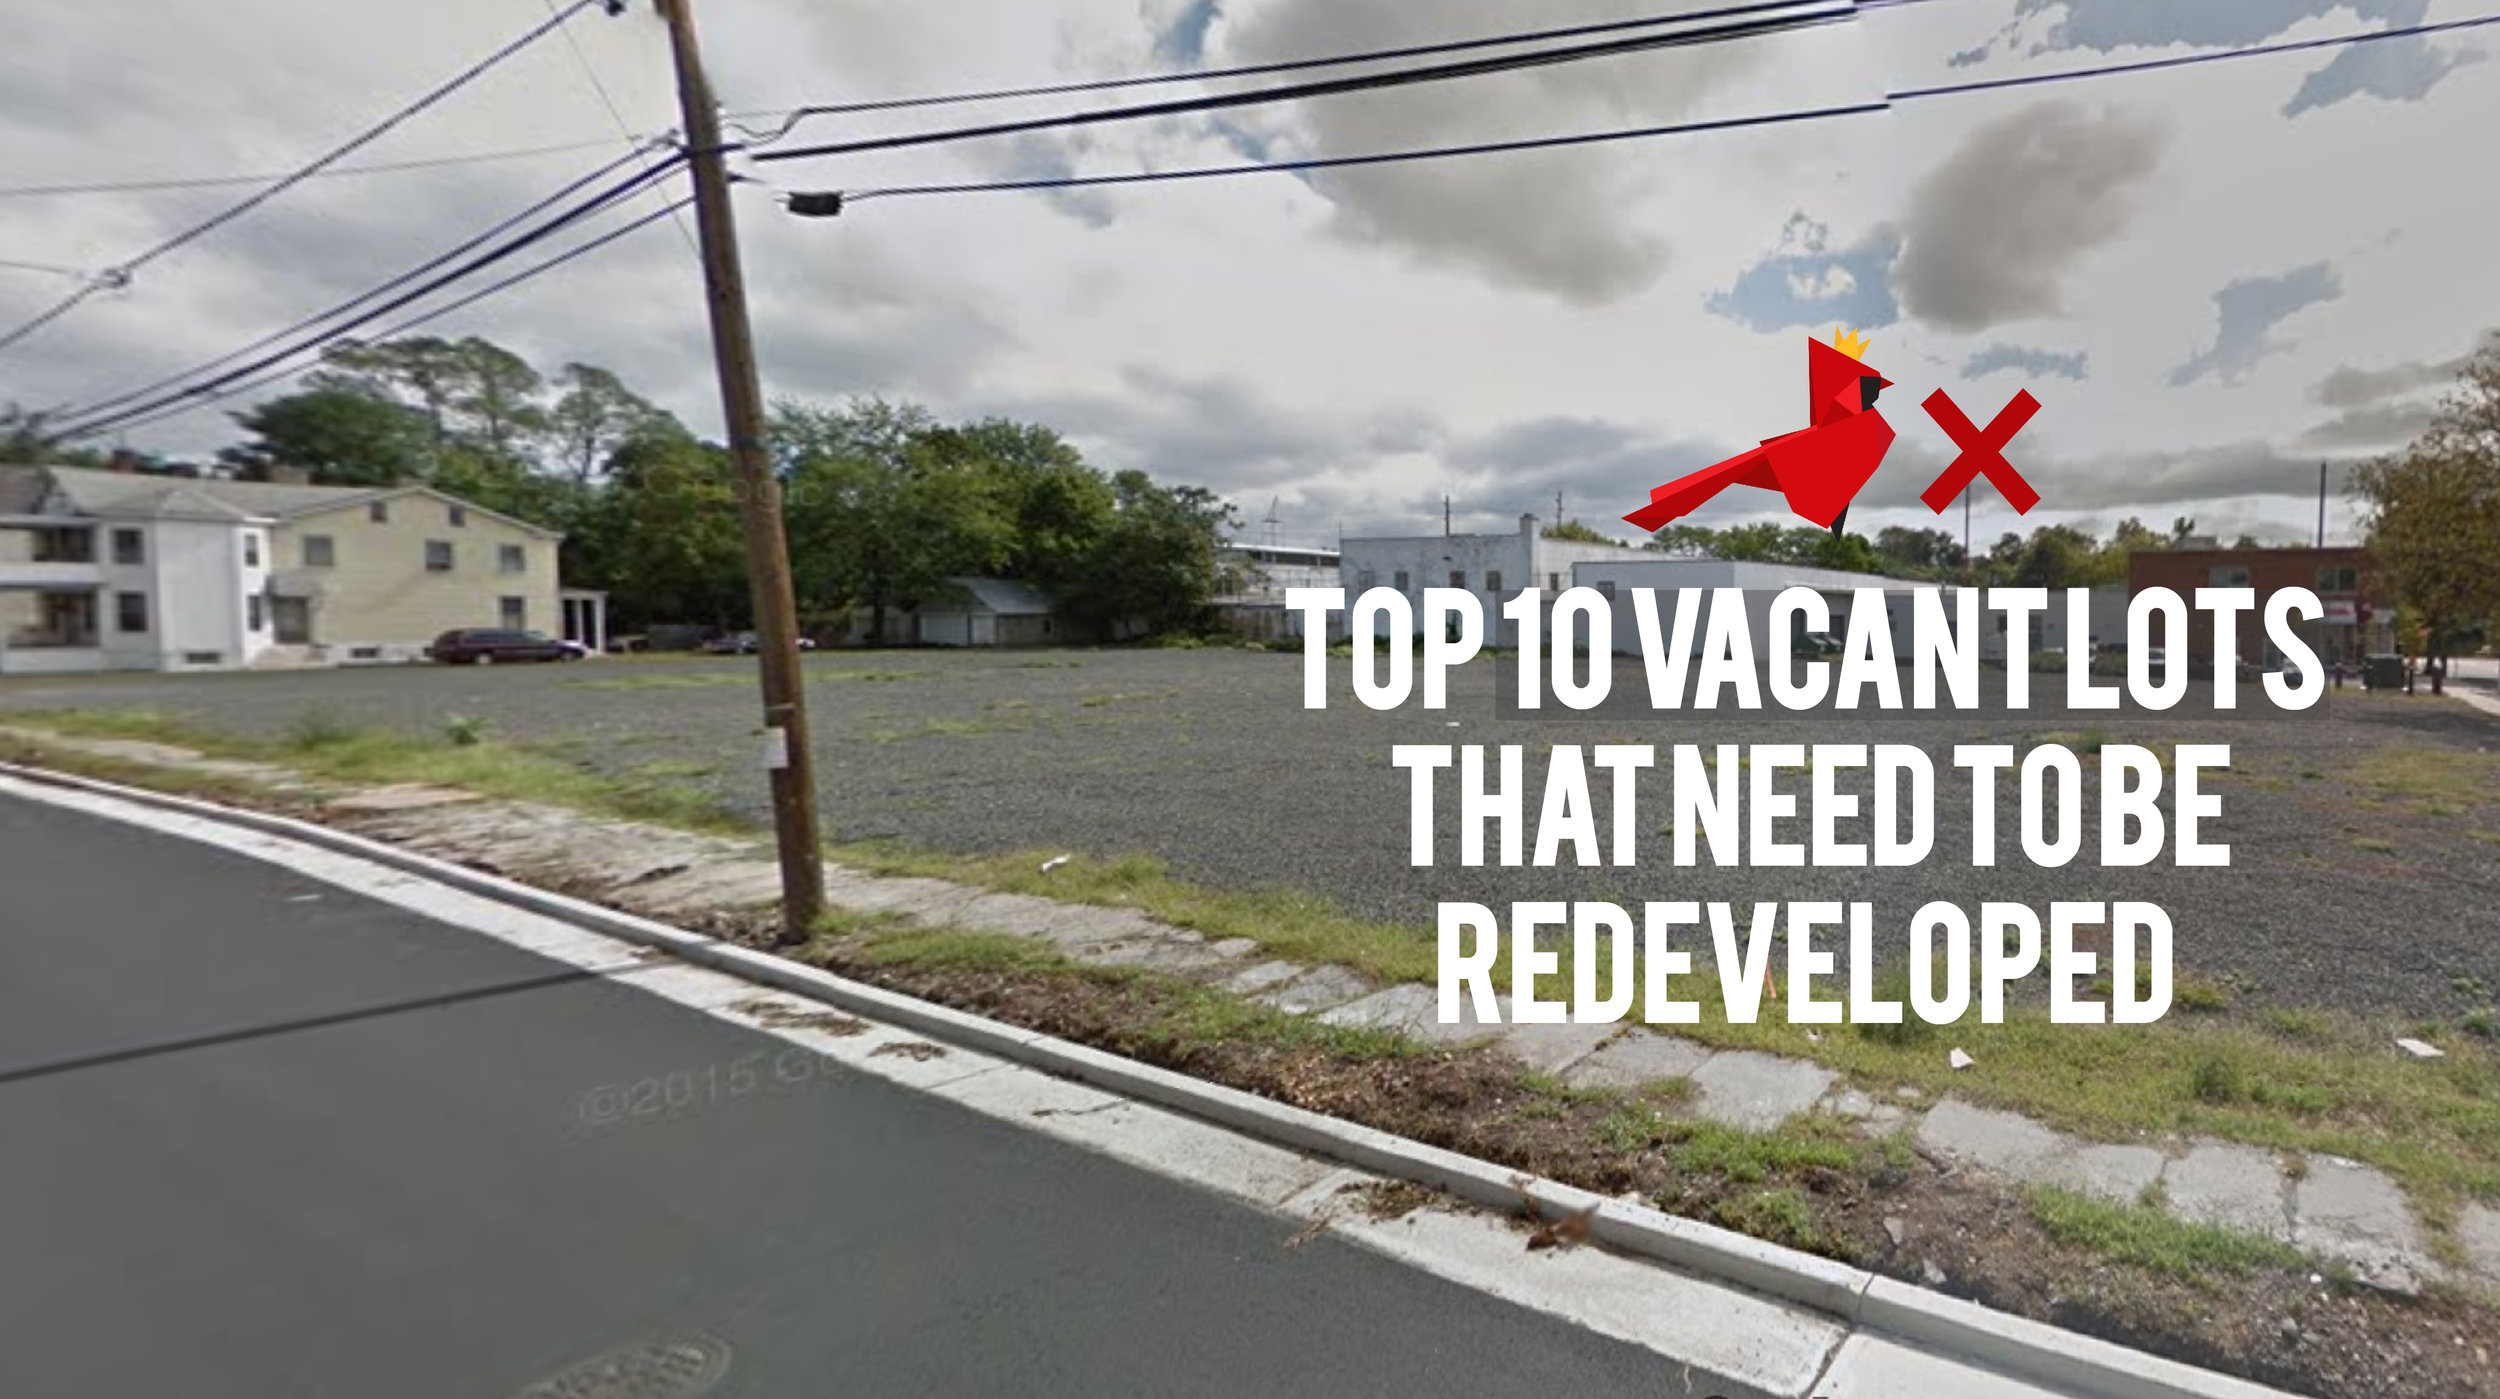 10 vacant lots for redevelopment cover2-01.jpg